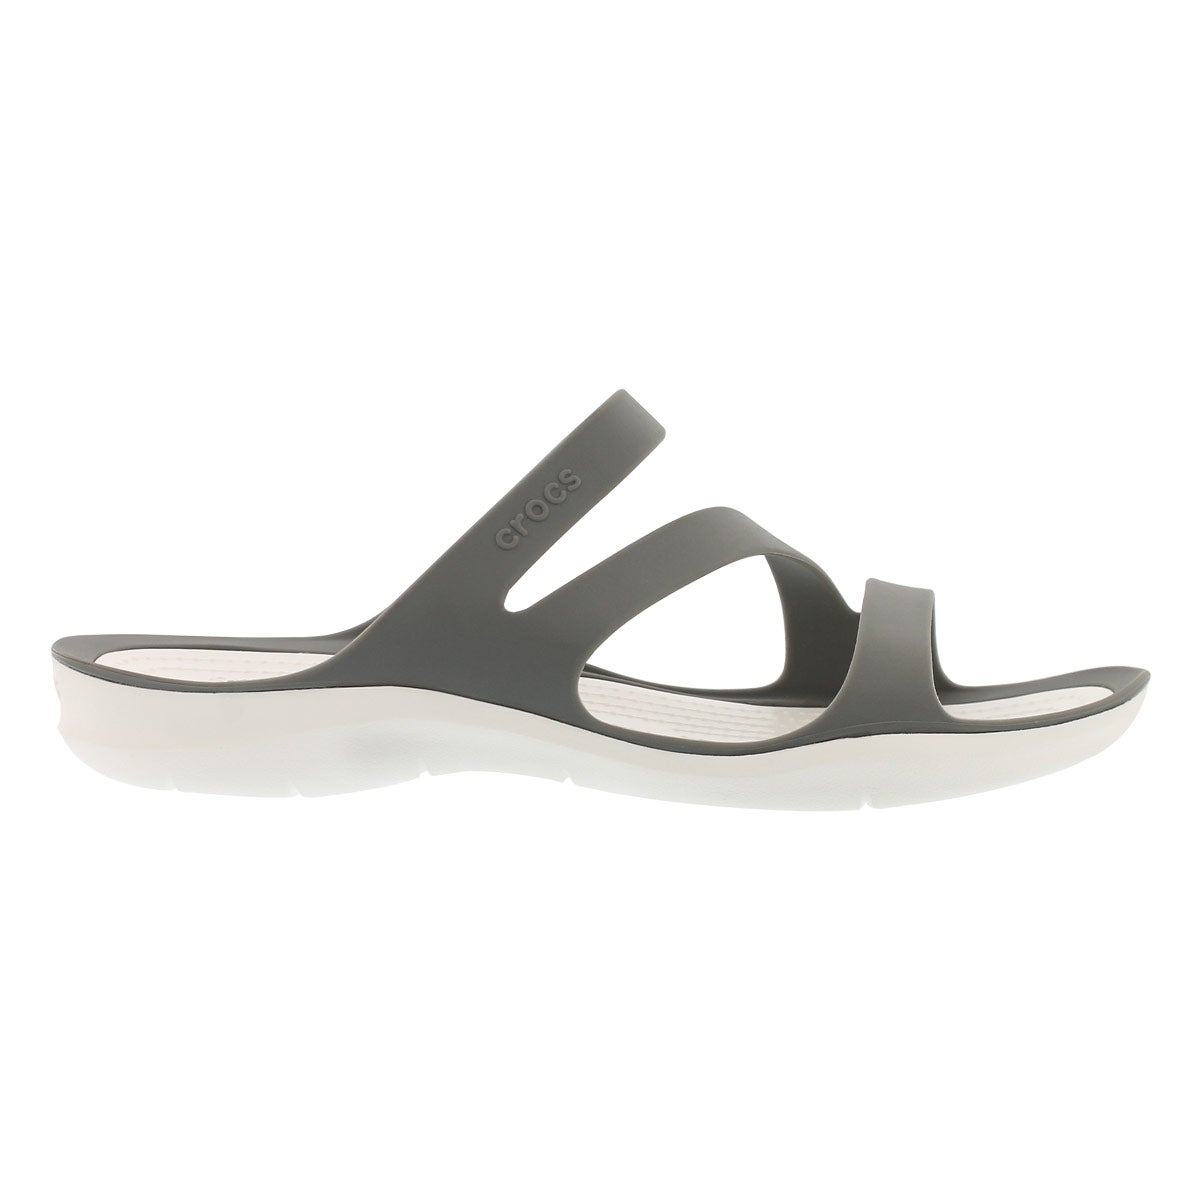 Lds Swiftwater smoke/white slide sandal